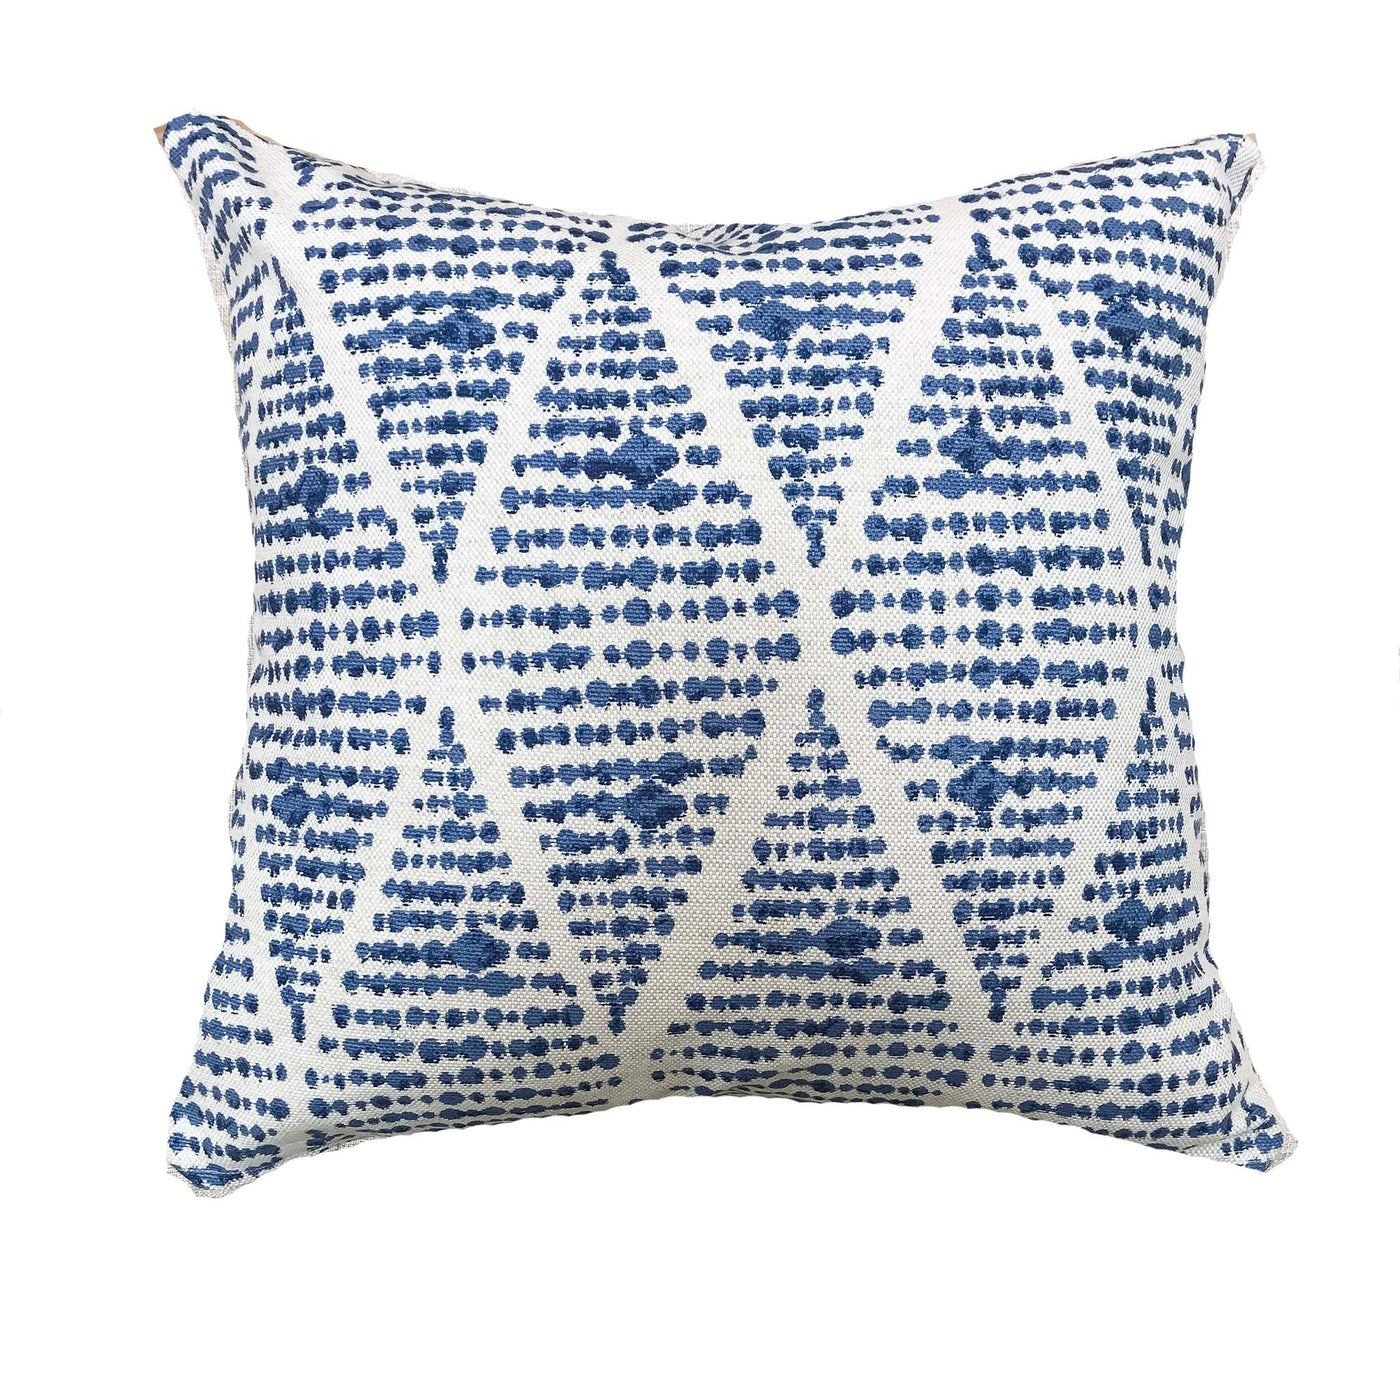 Global touch with blue boho pillows - BRUNO - Studio Pillows